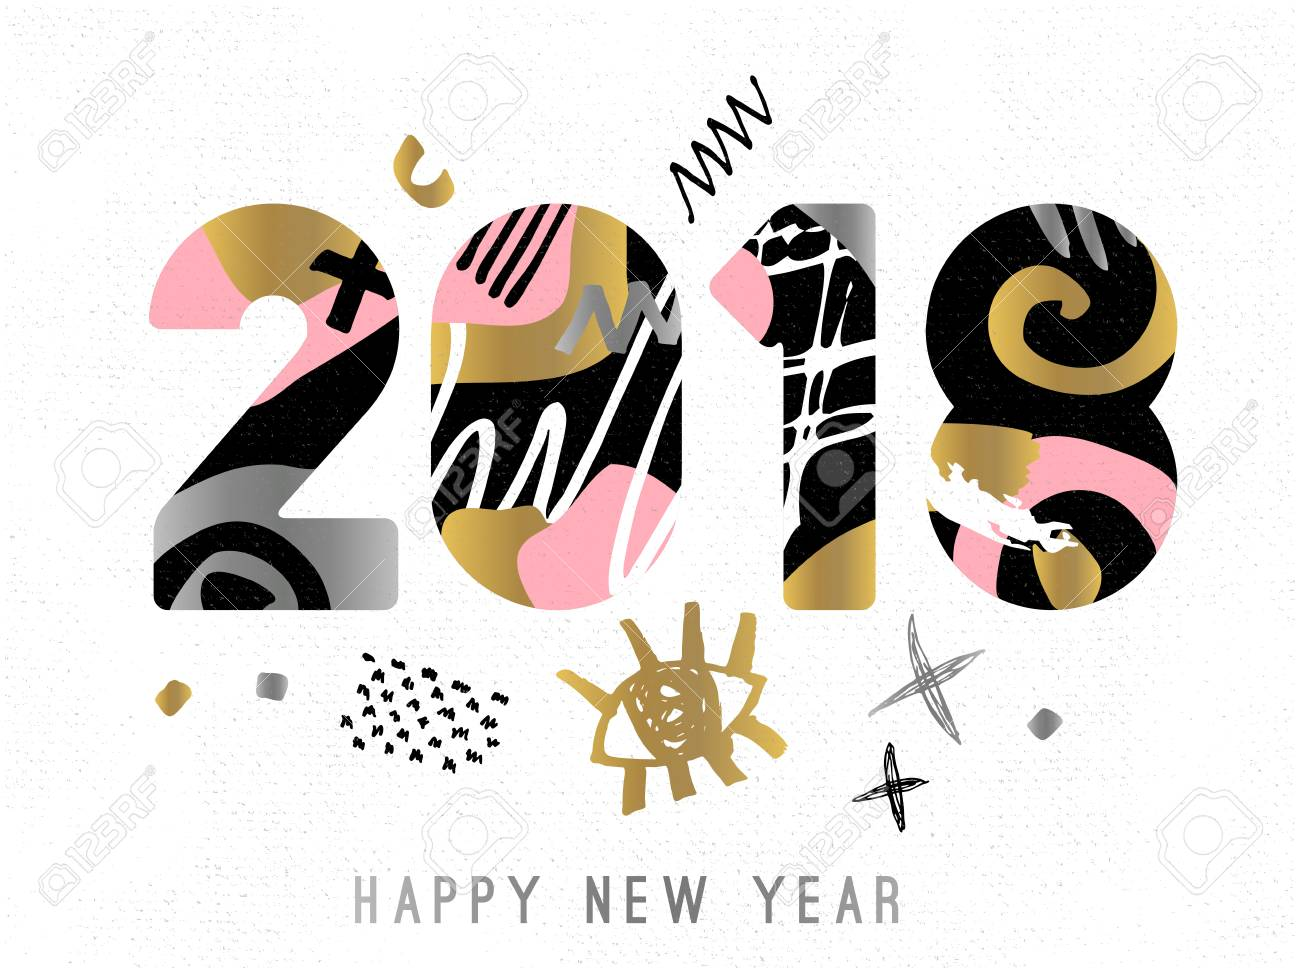 happy new year merry x mas lettering greeting card drawn vector elements